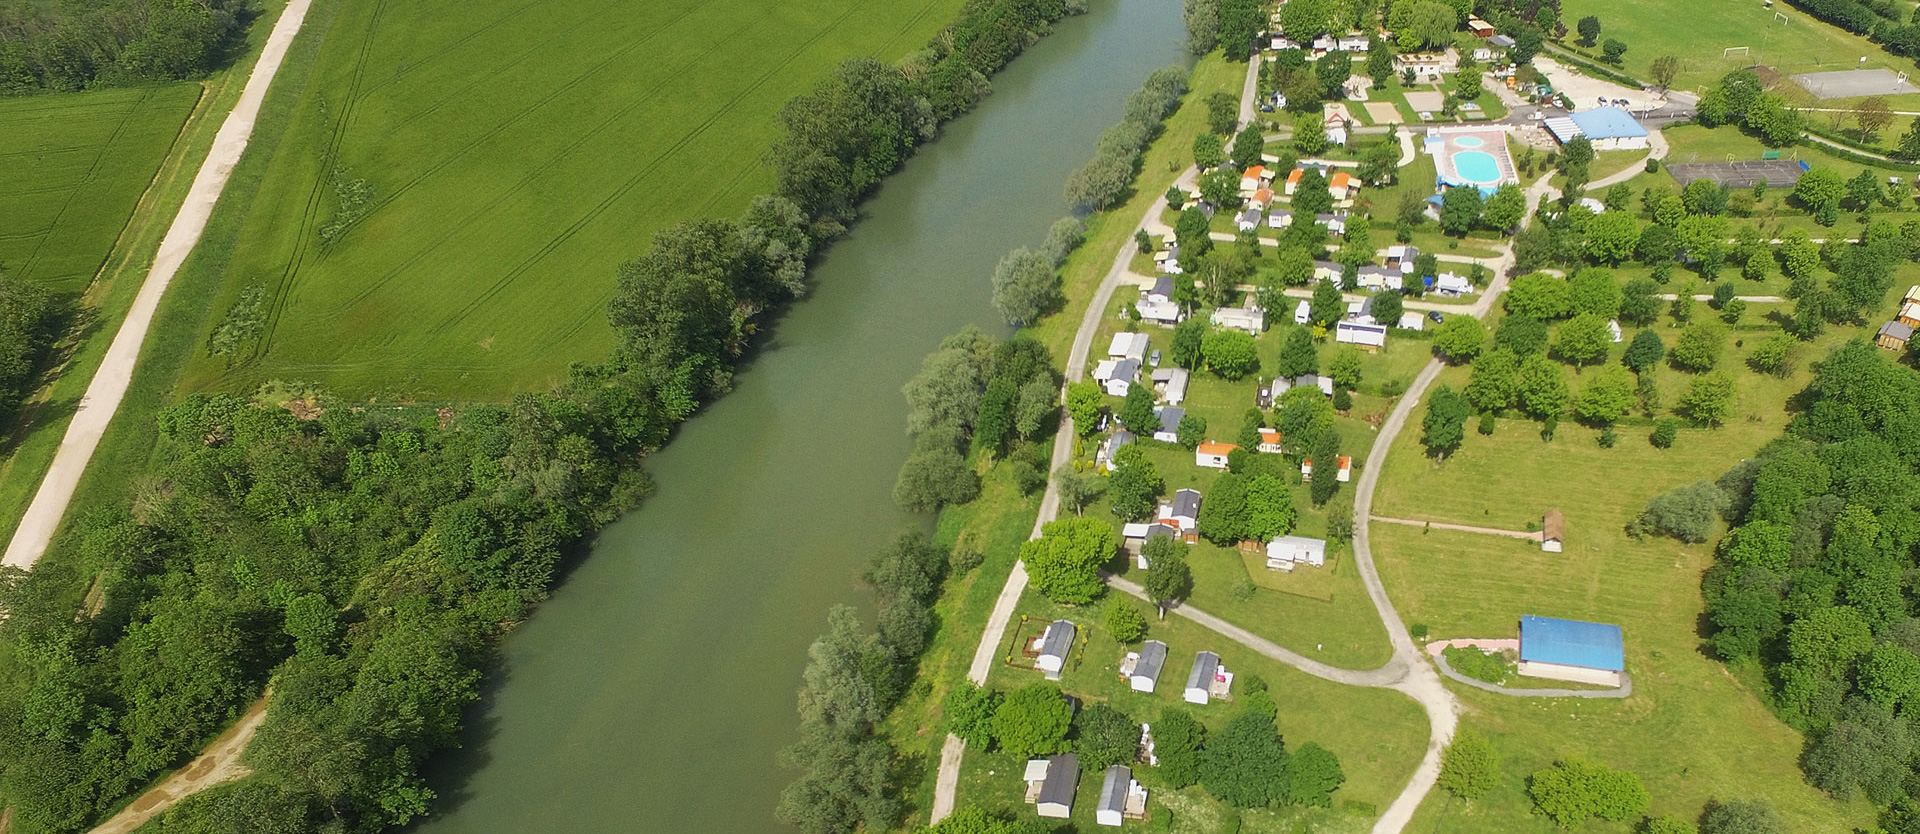 Aerial view of the campsite, chalet rental and mobile home in the Jura